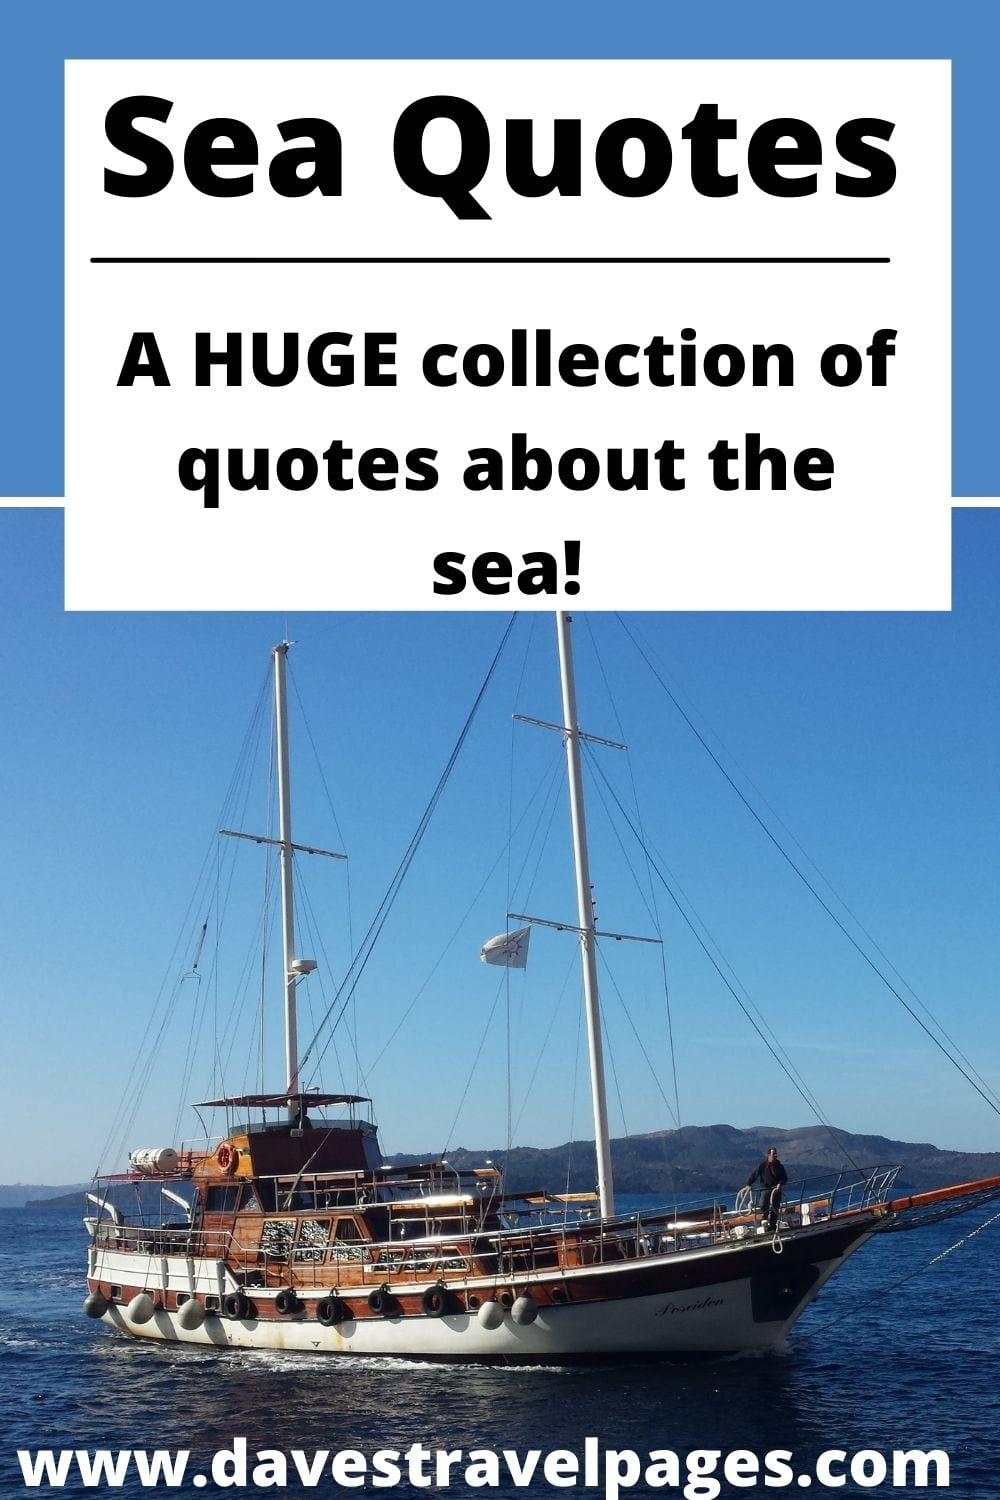 A HUGE collection of quotes about the sea!